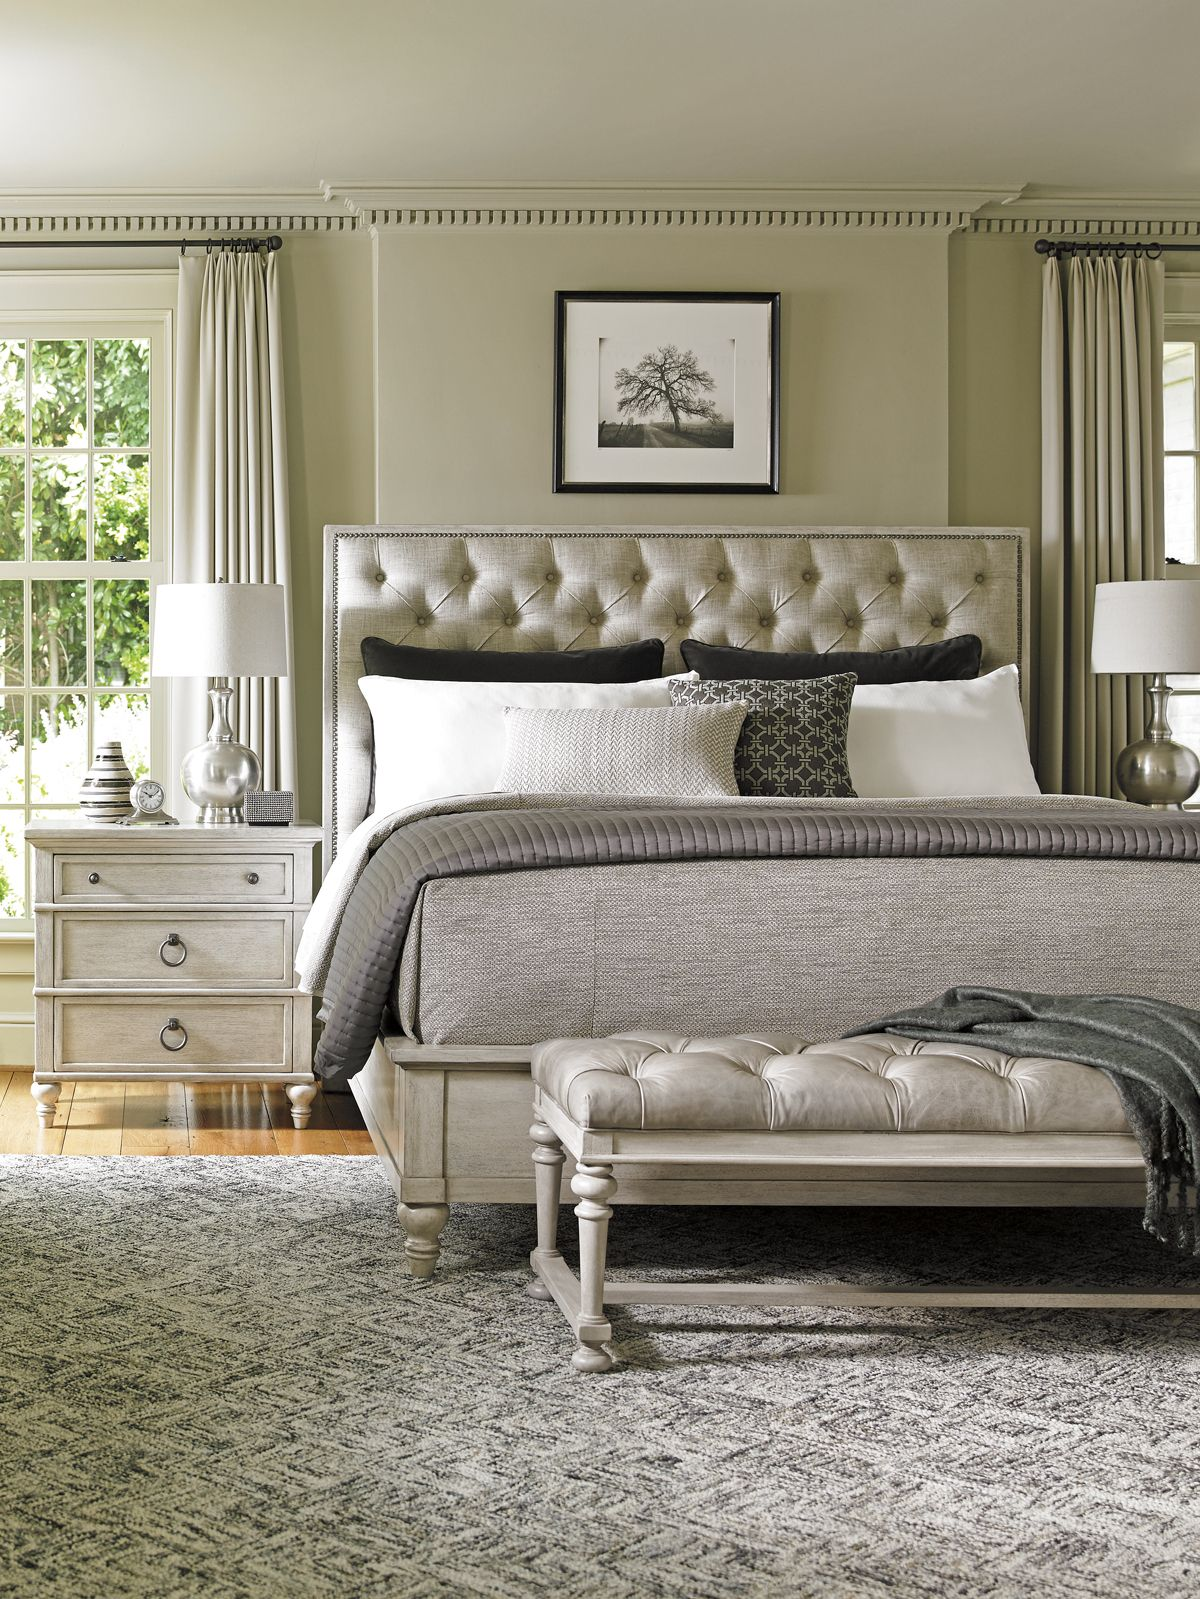 Tufted Headboard with Leather bench by Lexington Furniture ...